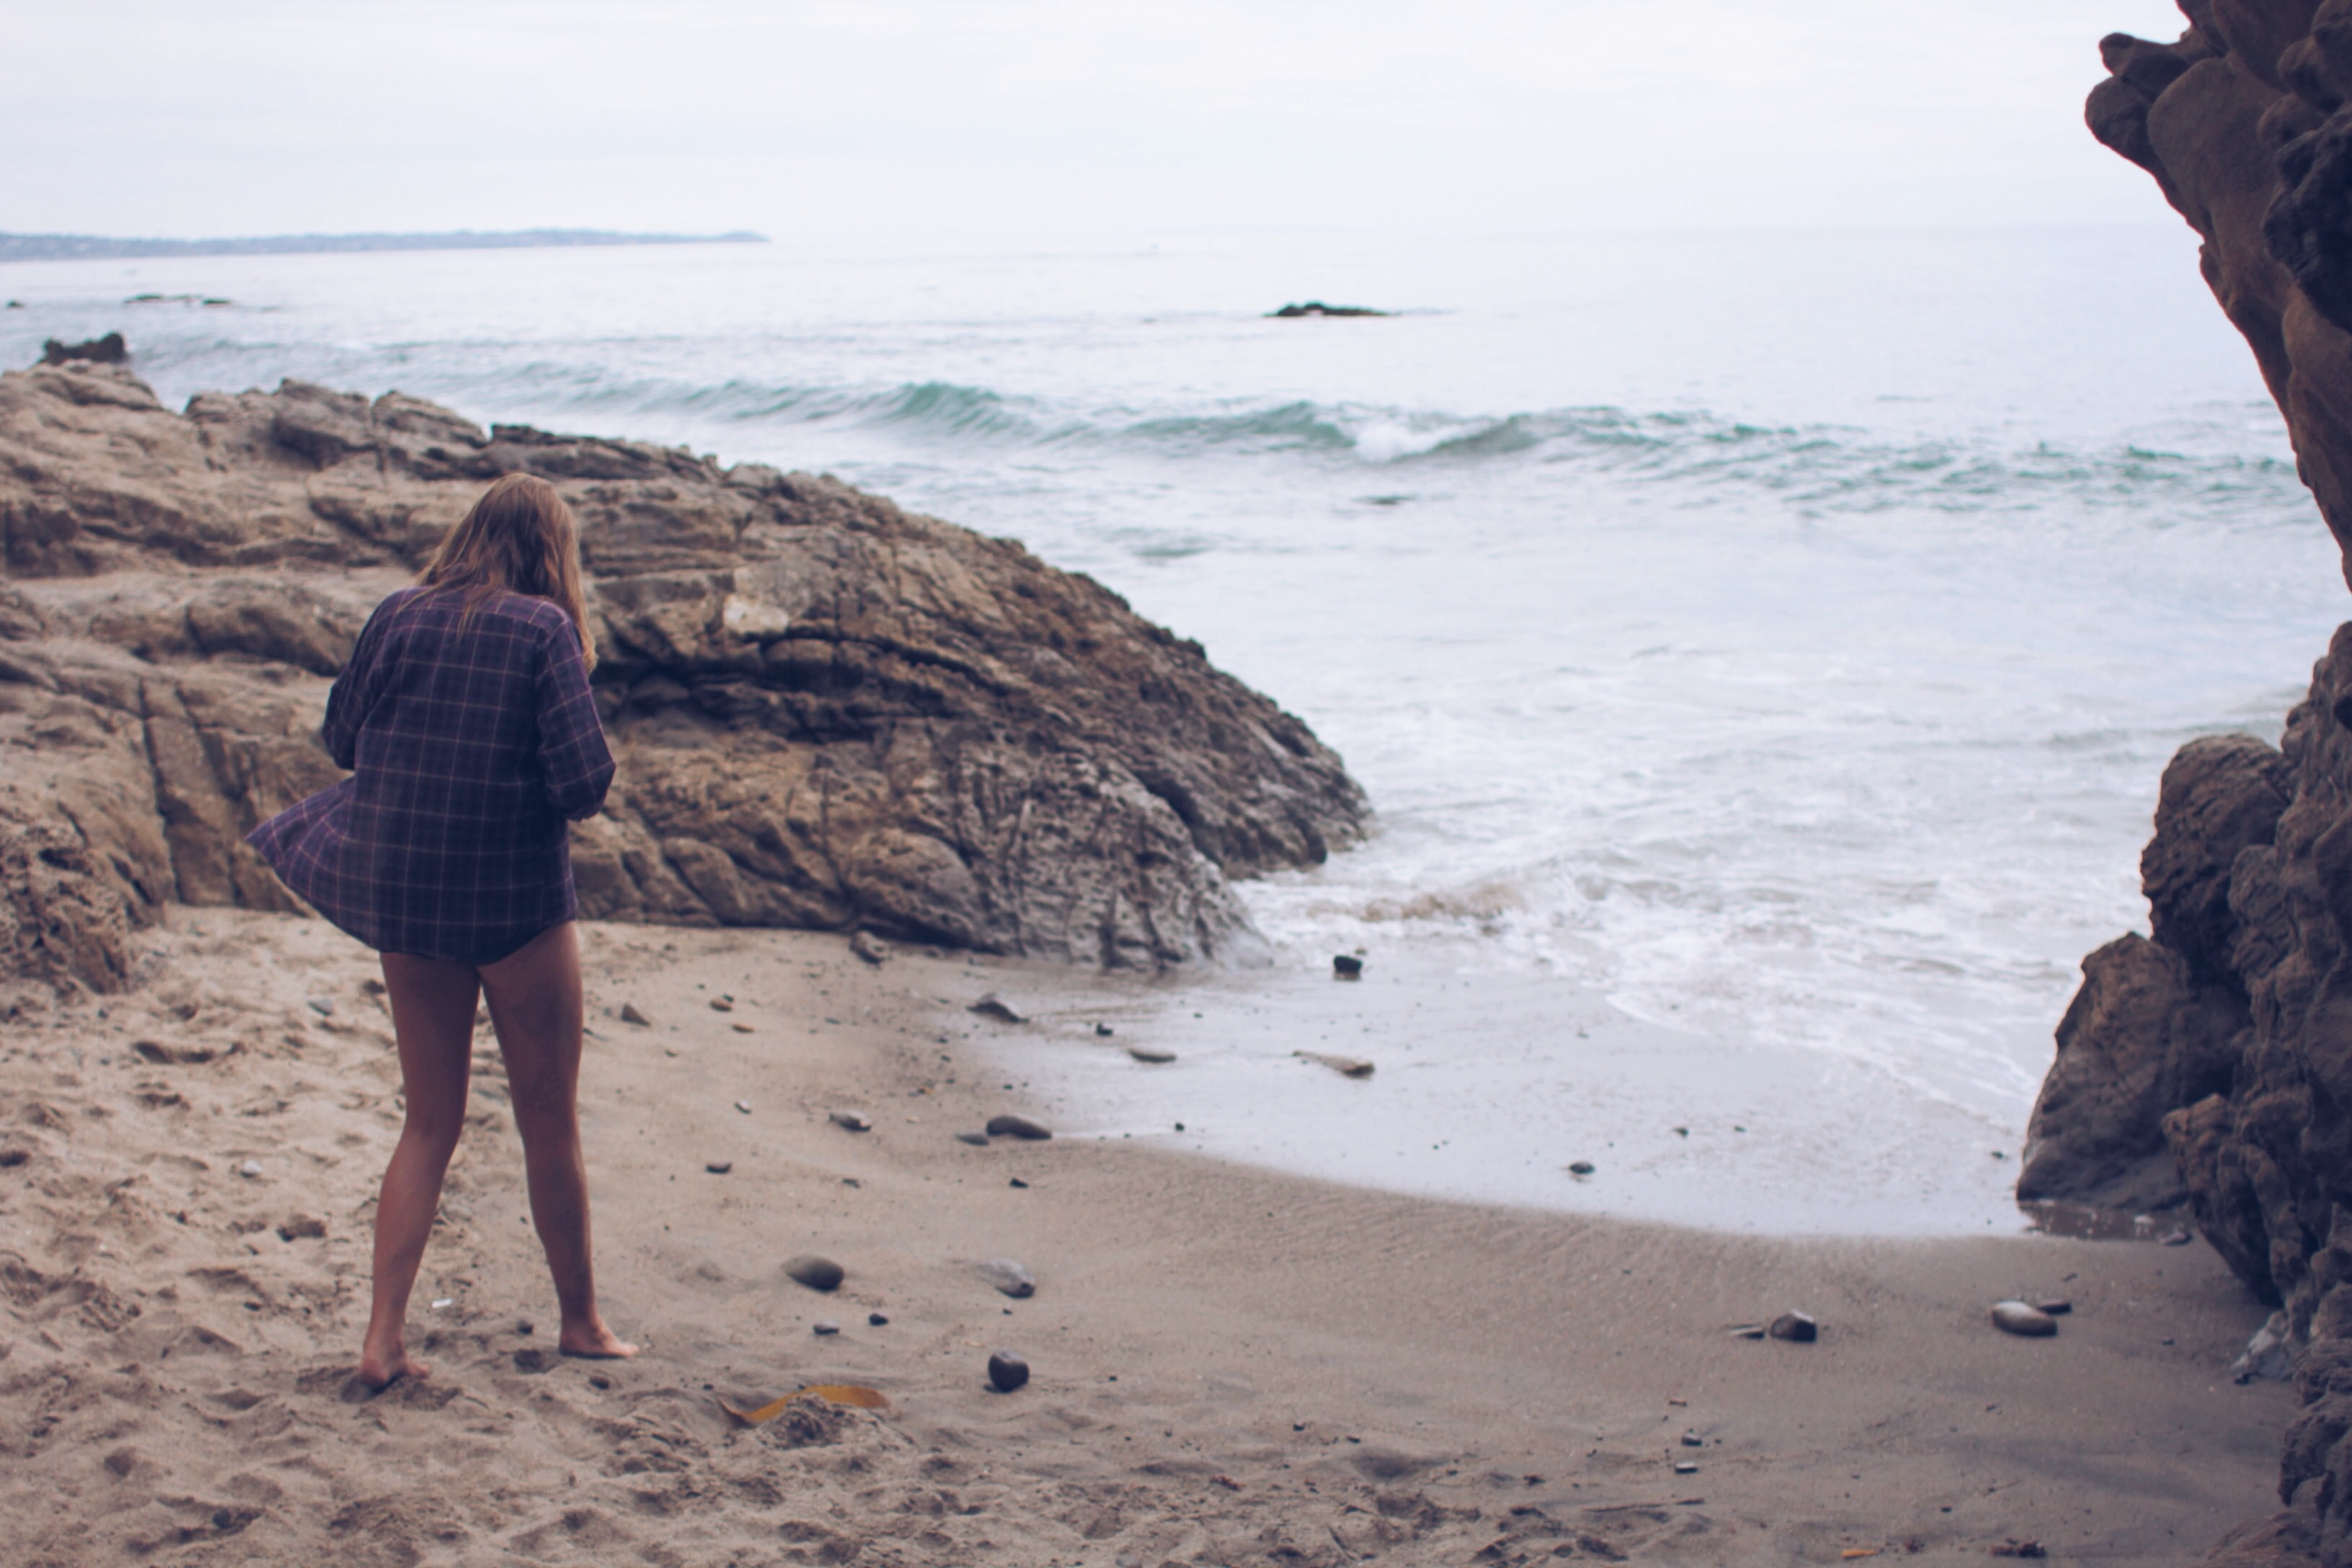 Woman on vacation steps out of the cove to relax in the beach shores